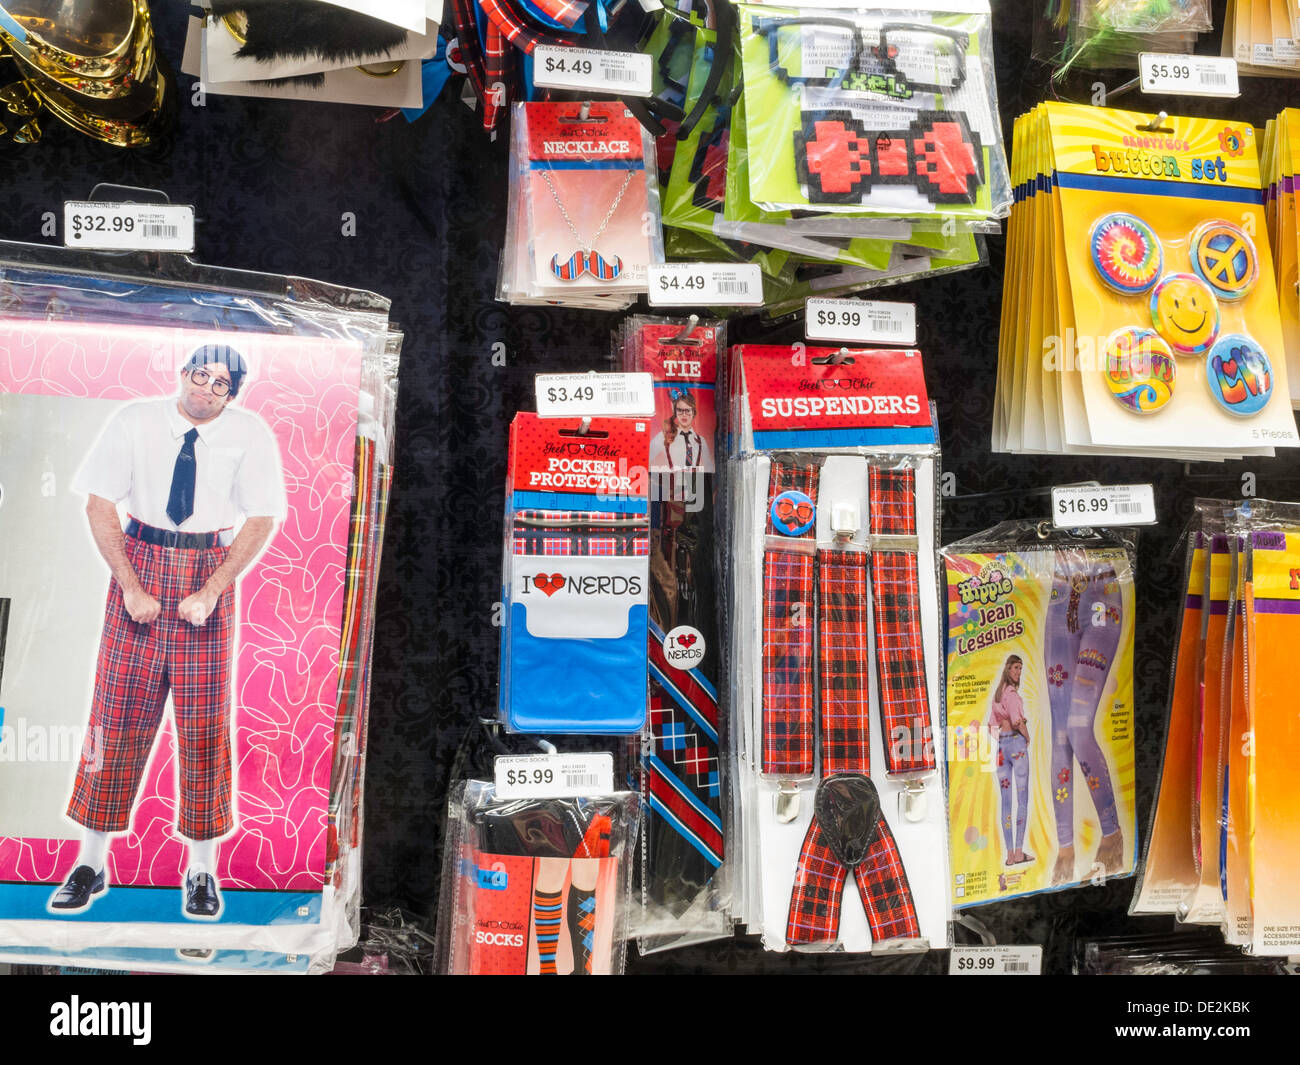 Party City Halloween Store Display, NYC Stock Photo, Royalty Free ...